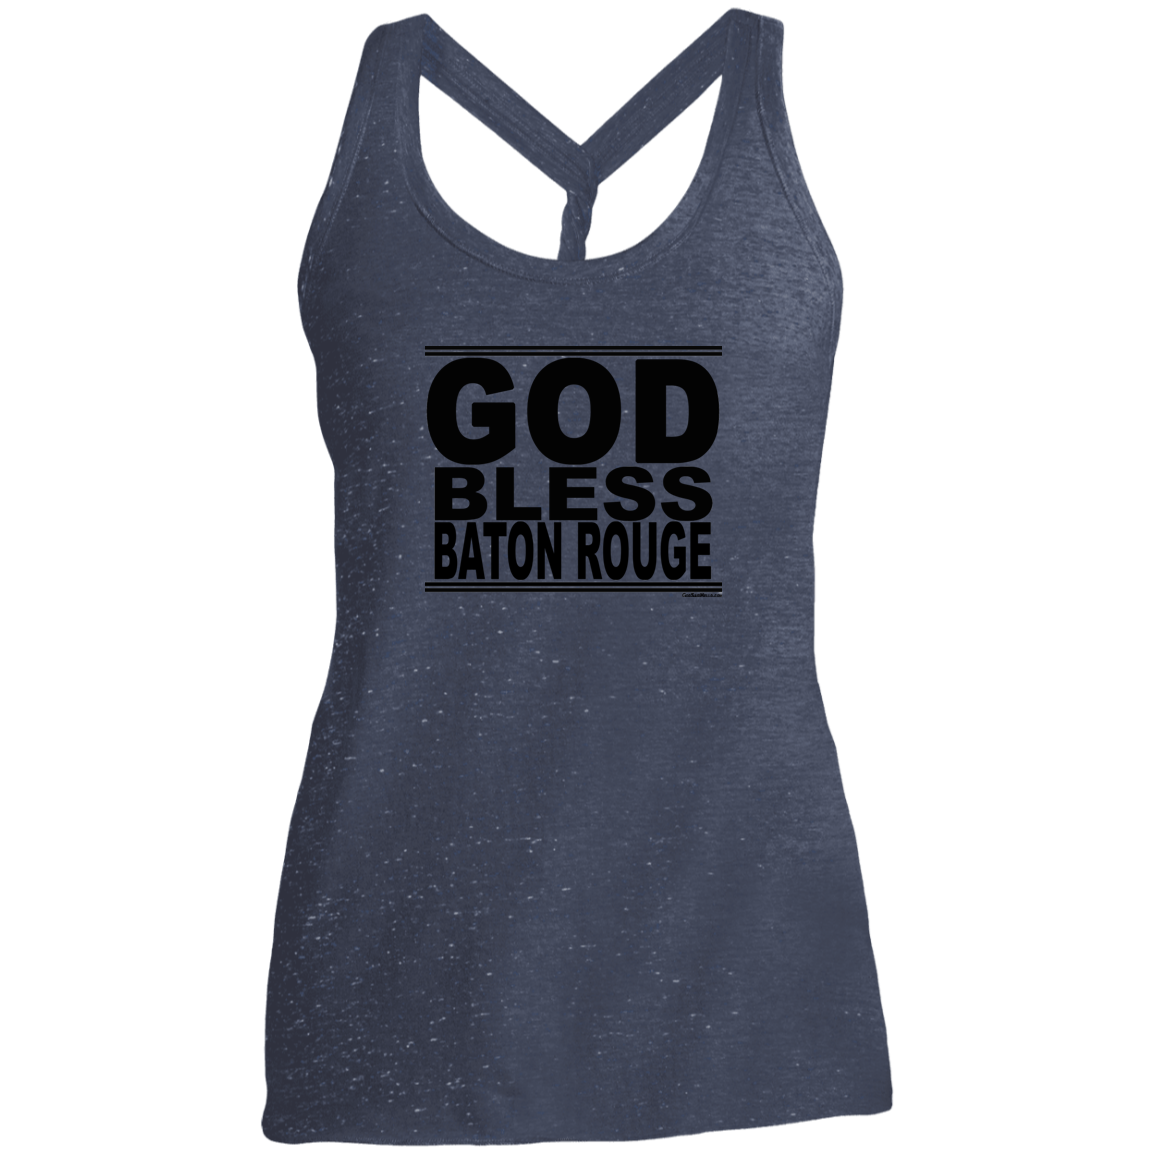 #GodBlessBatonRouge - Women's Twist Back Tank Top